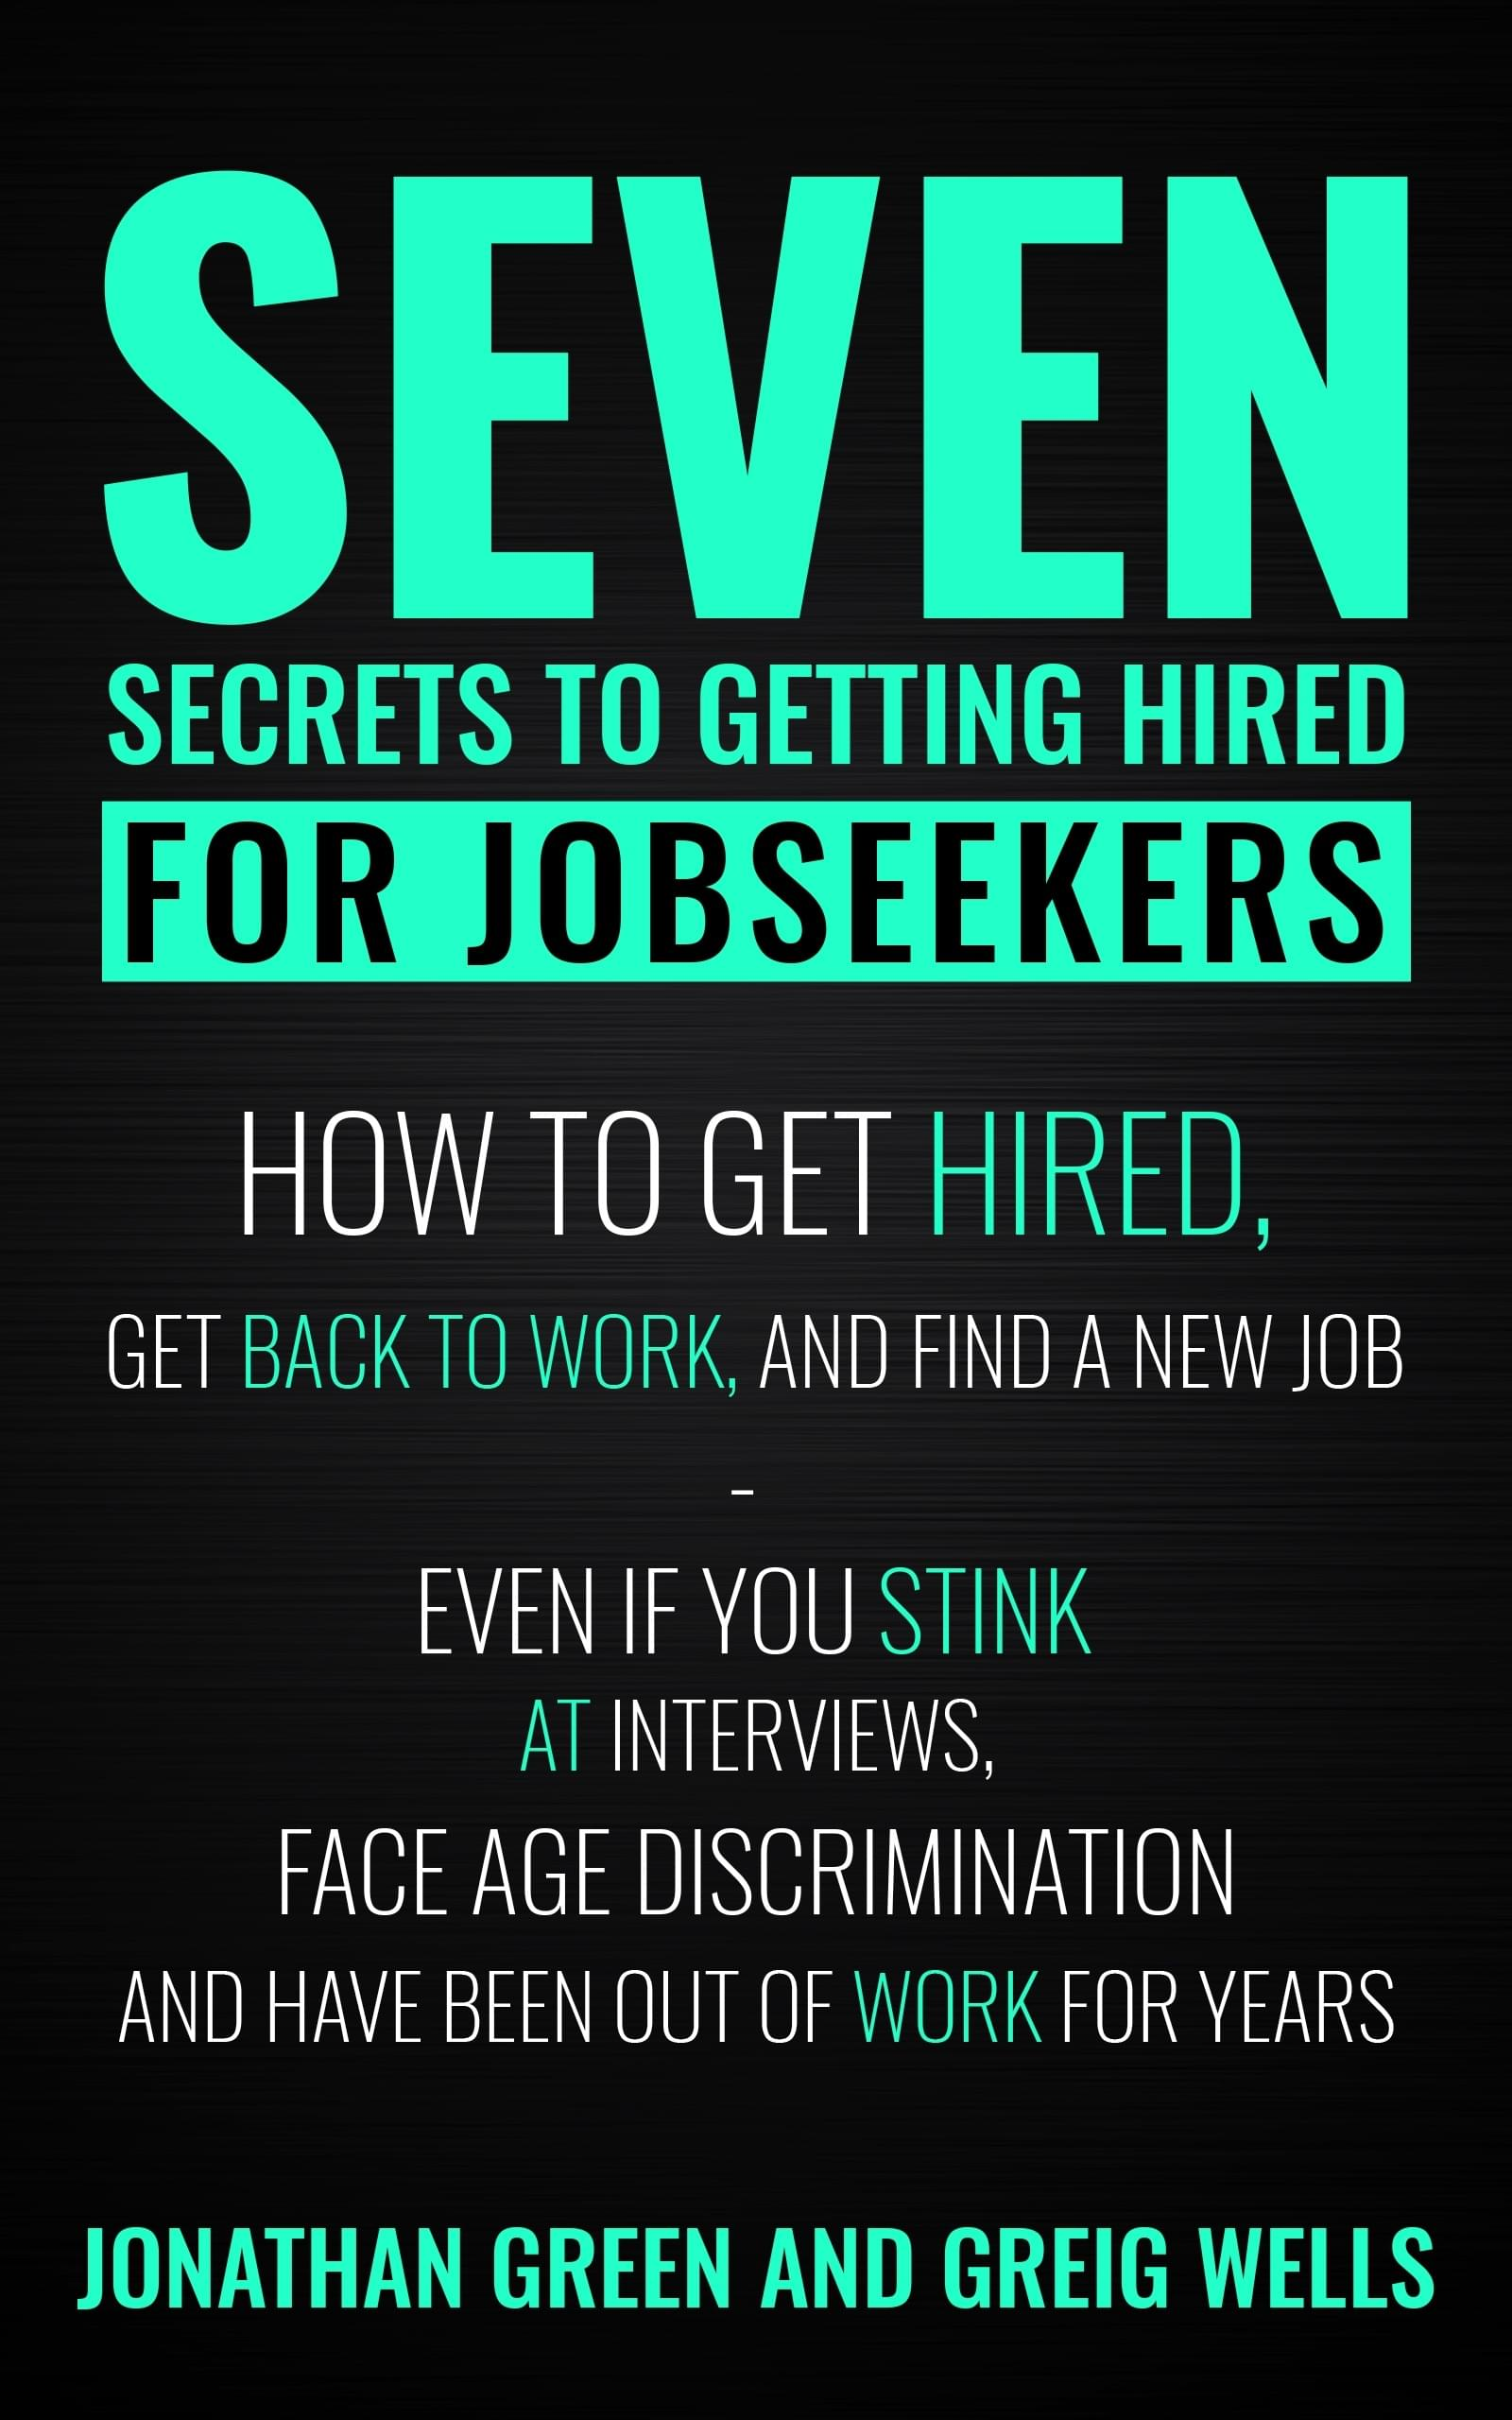 Seven Secrets to Getting Hired for Jobseekers by Jonathan Green and Greig Wells